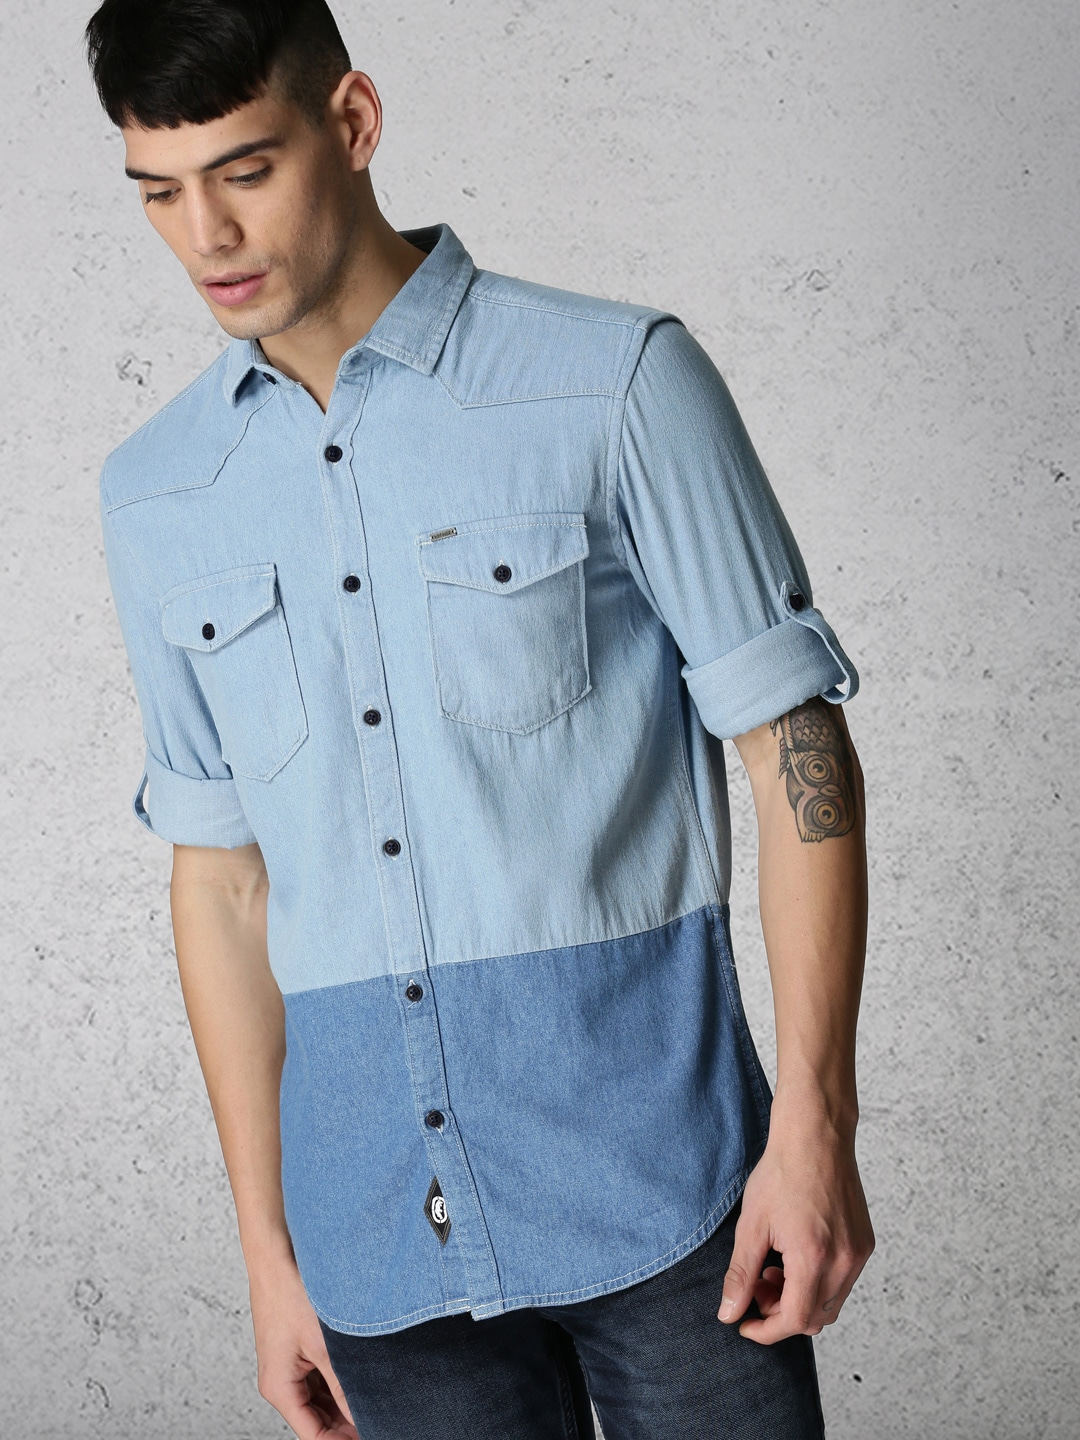 dc2aac87fc34 Summer Casuals - Buy Summer Casuals online in India